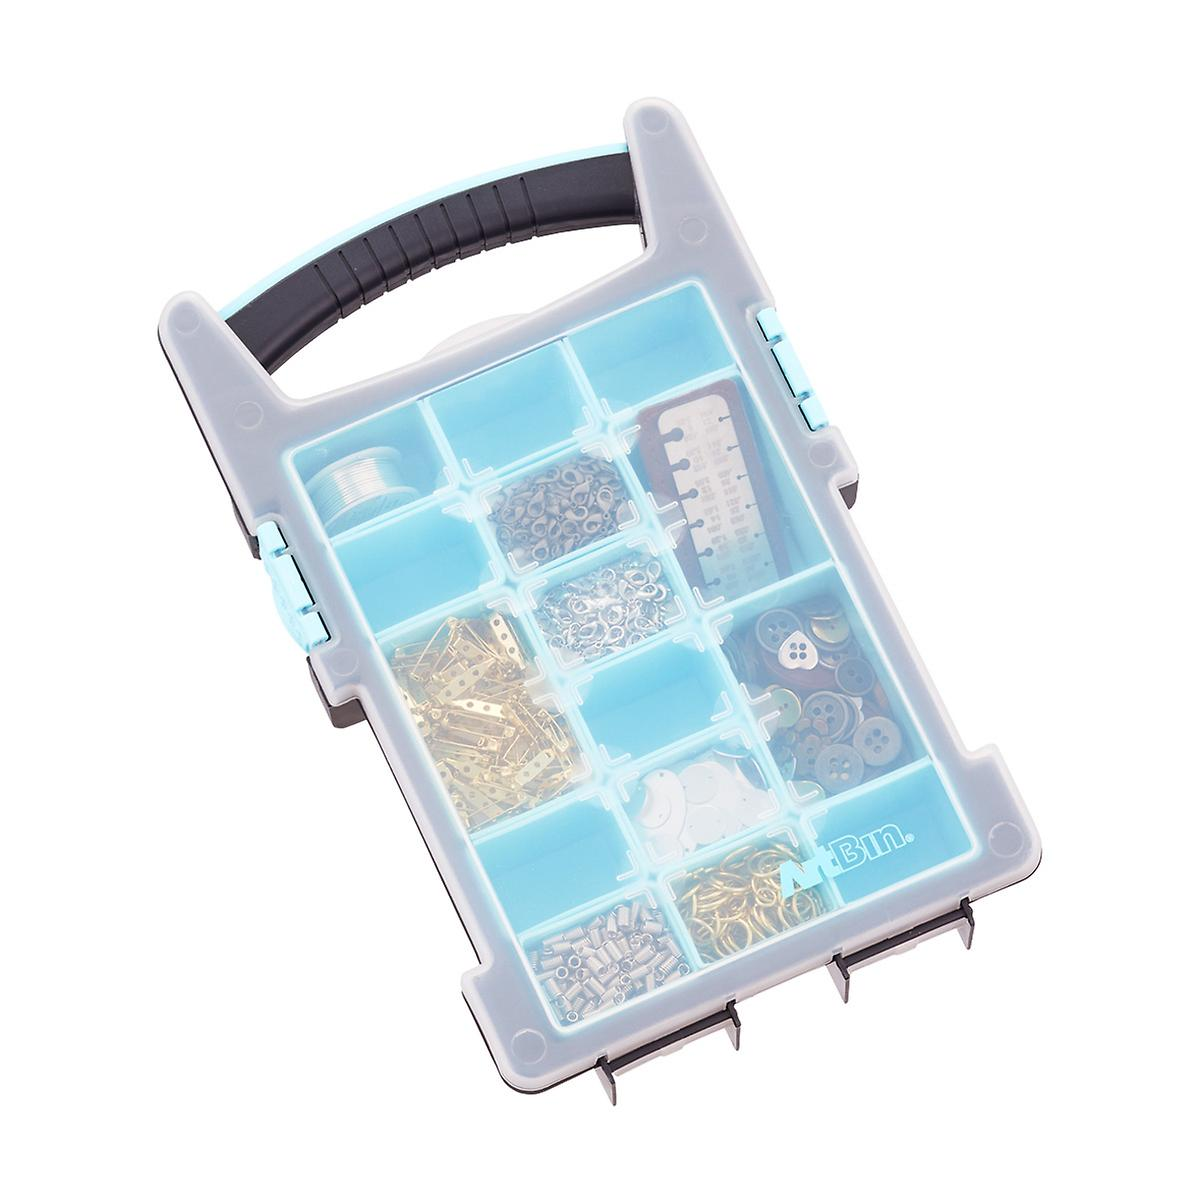 ArtBin Small Quickview Organizer